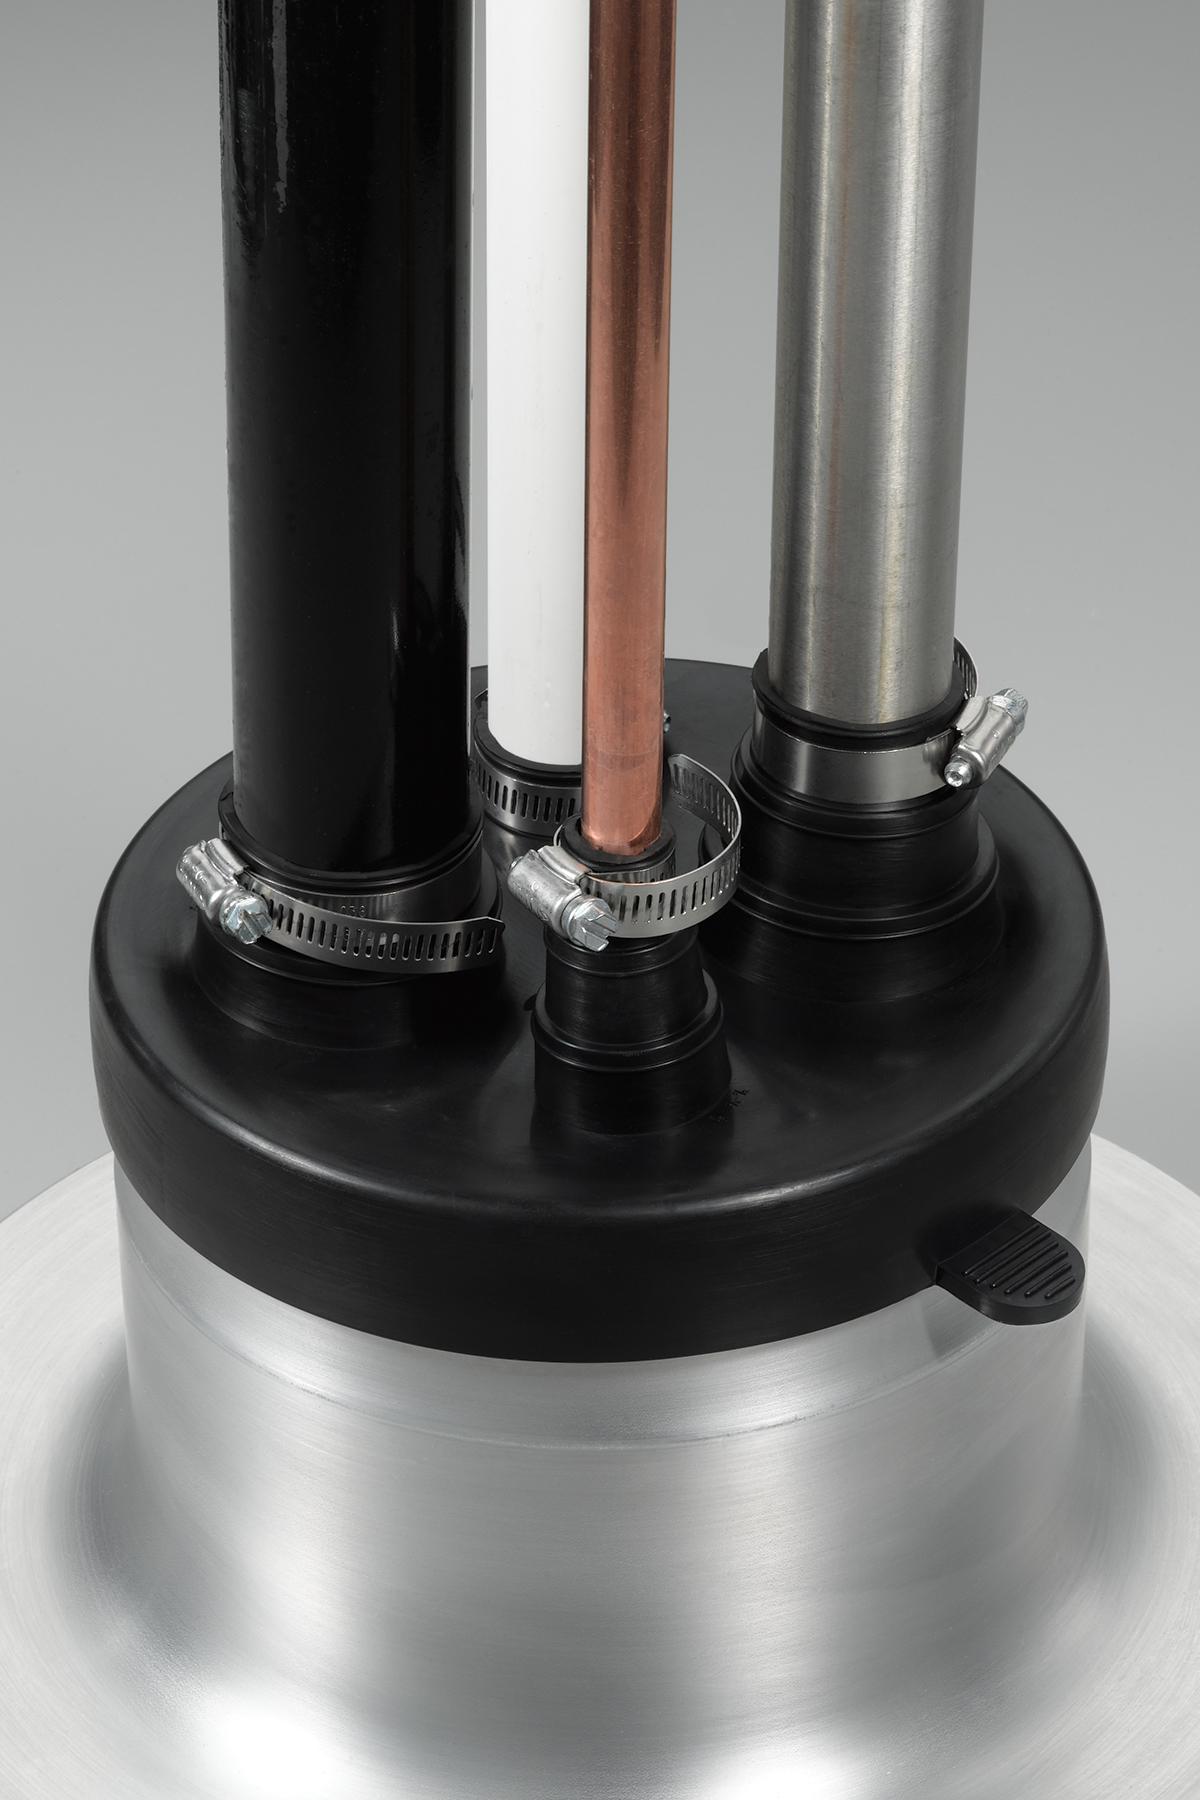 Universal Boot Accommodates Up To Four Pipes Of Various